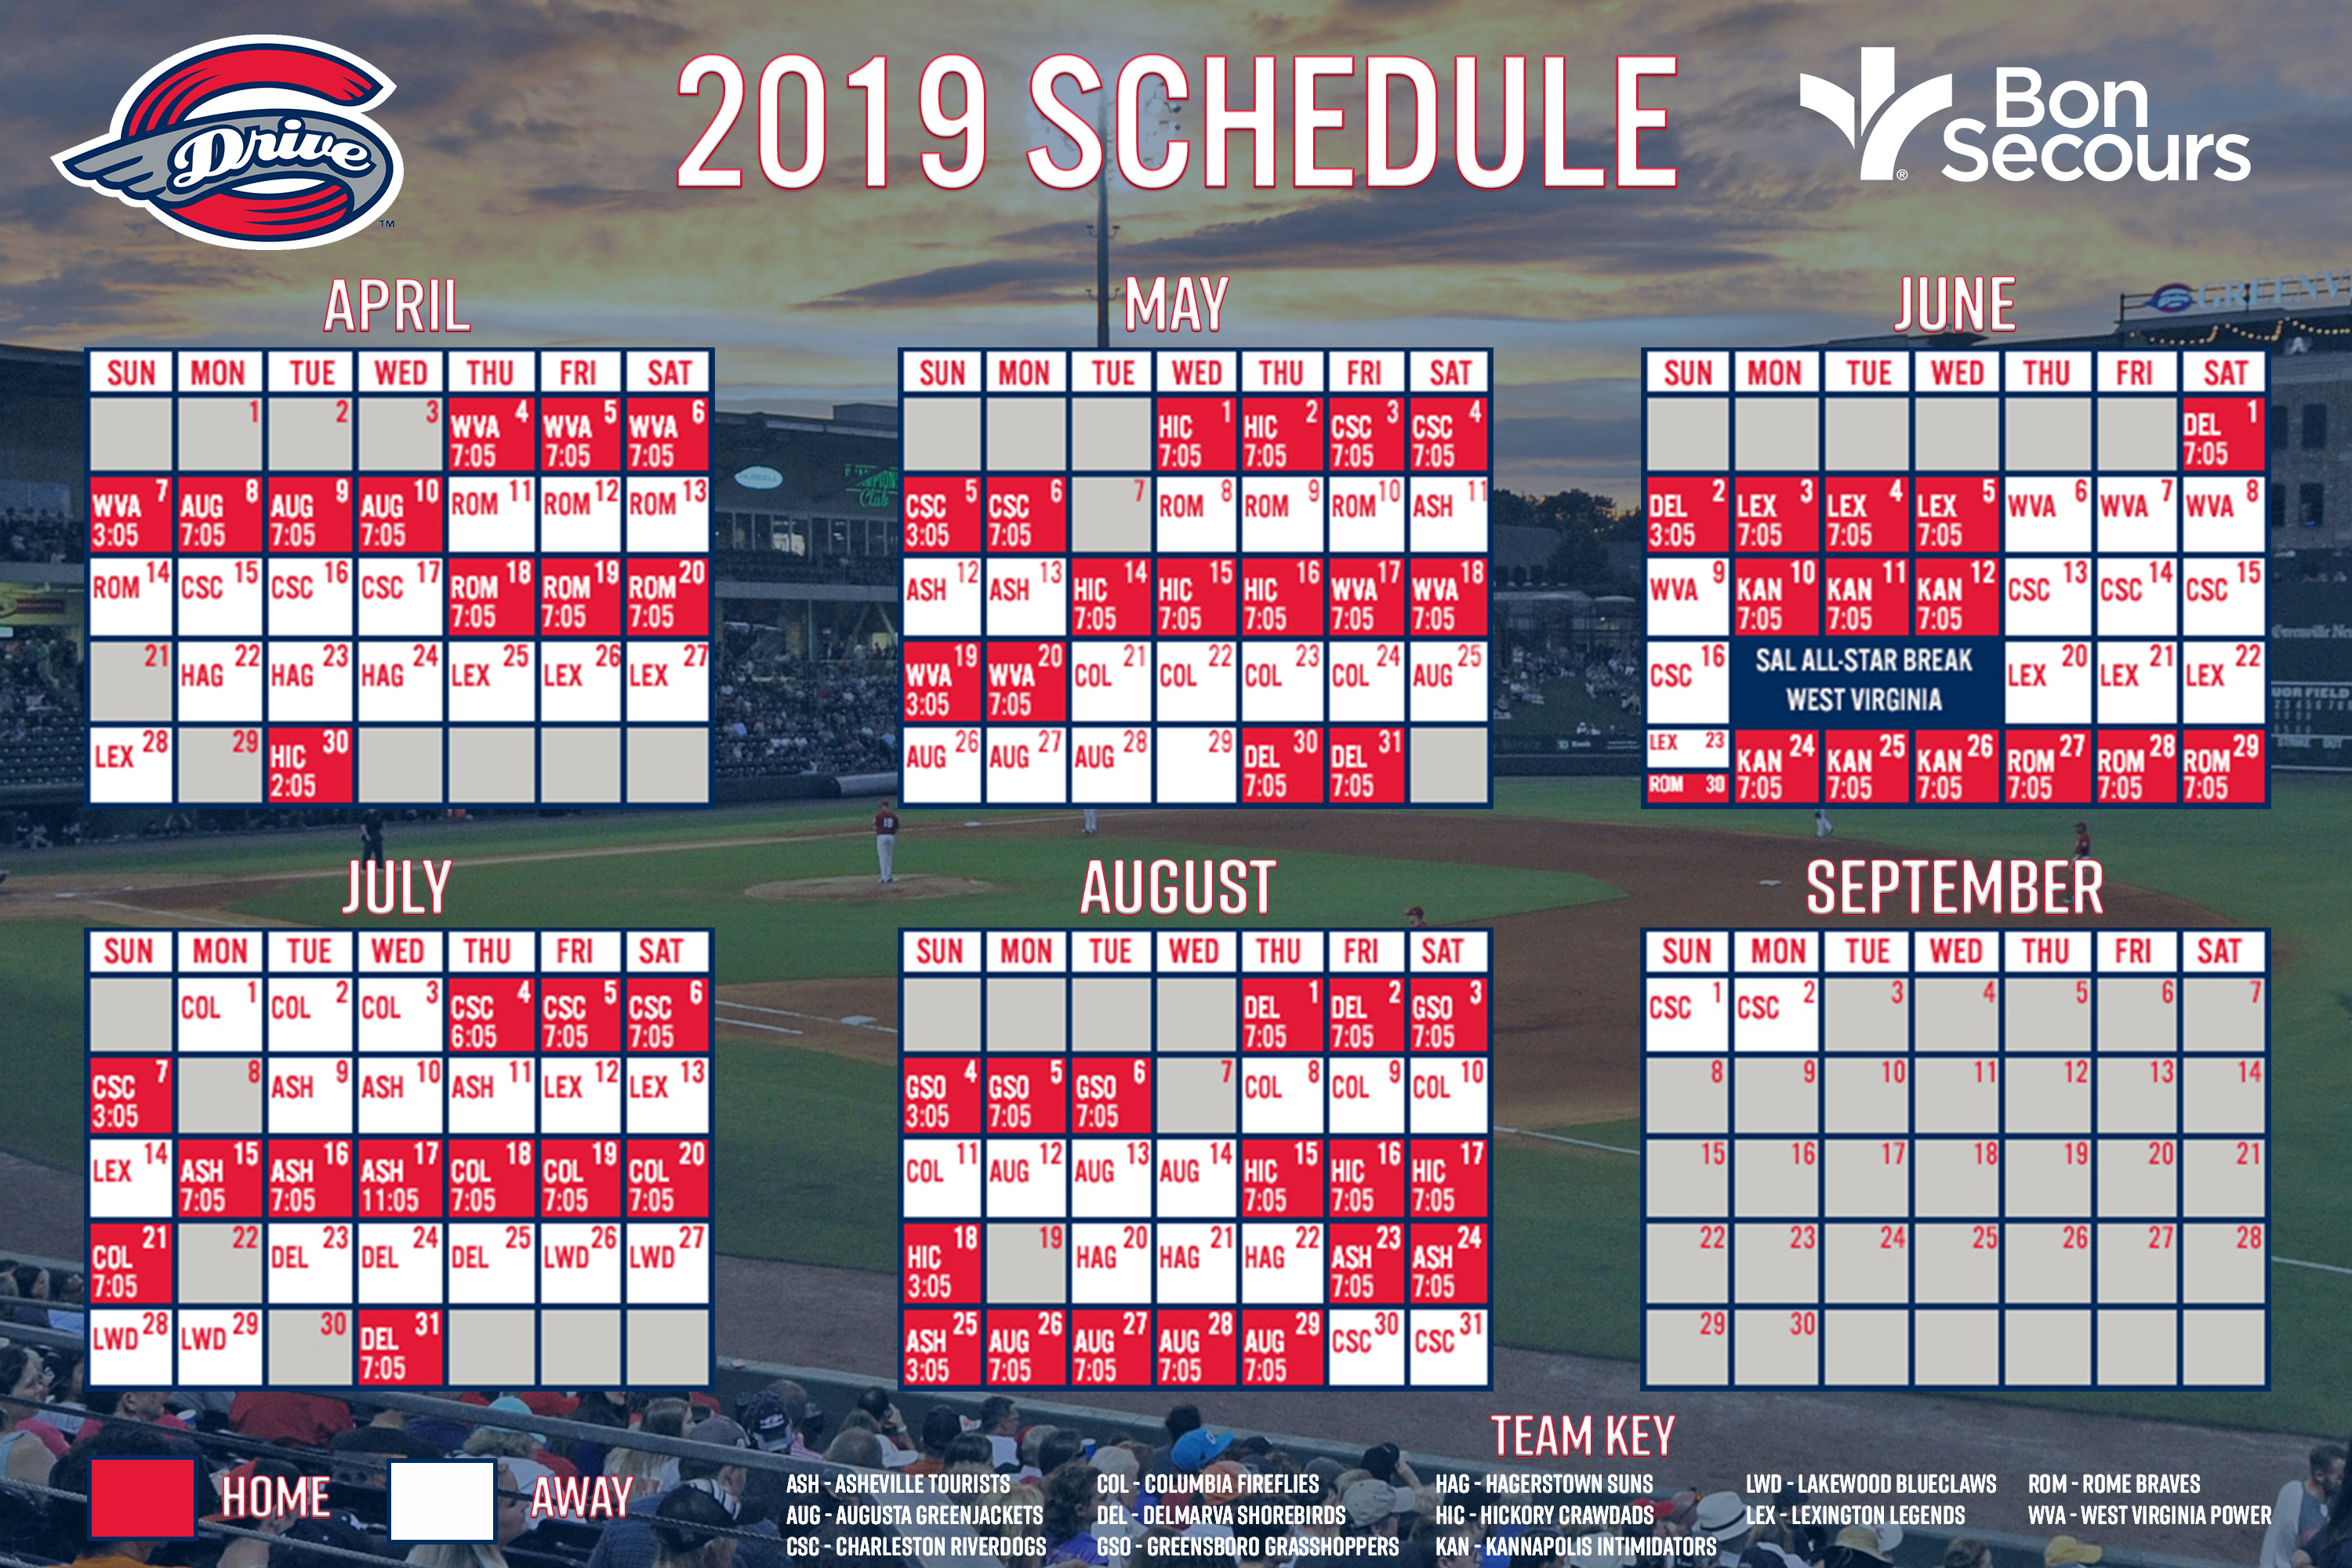 Red Sox Schedule July 2019 Greenville Drive | MiLB.com